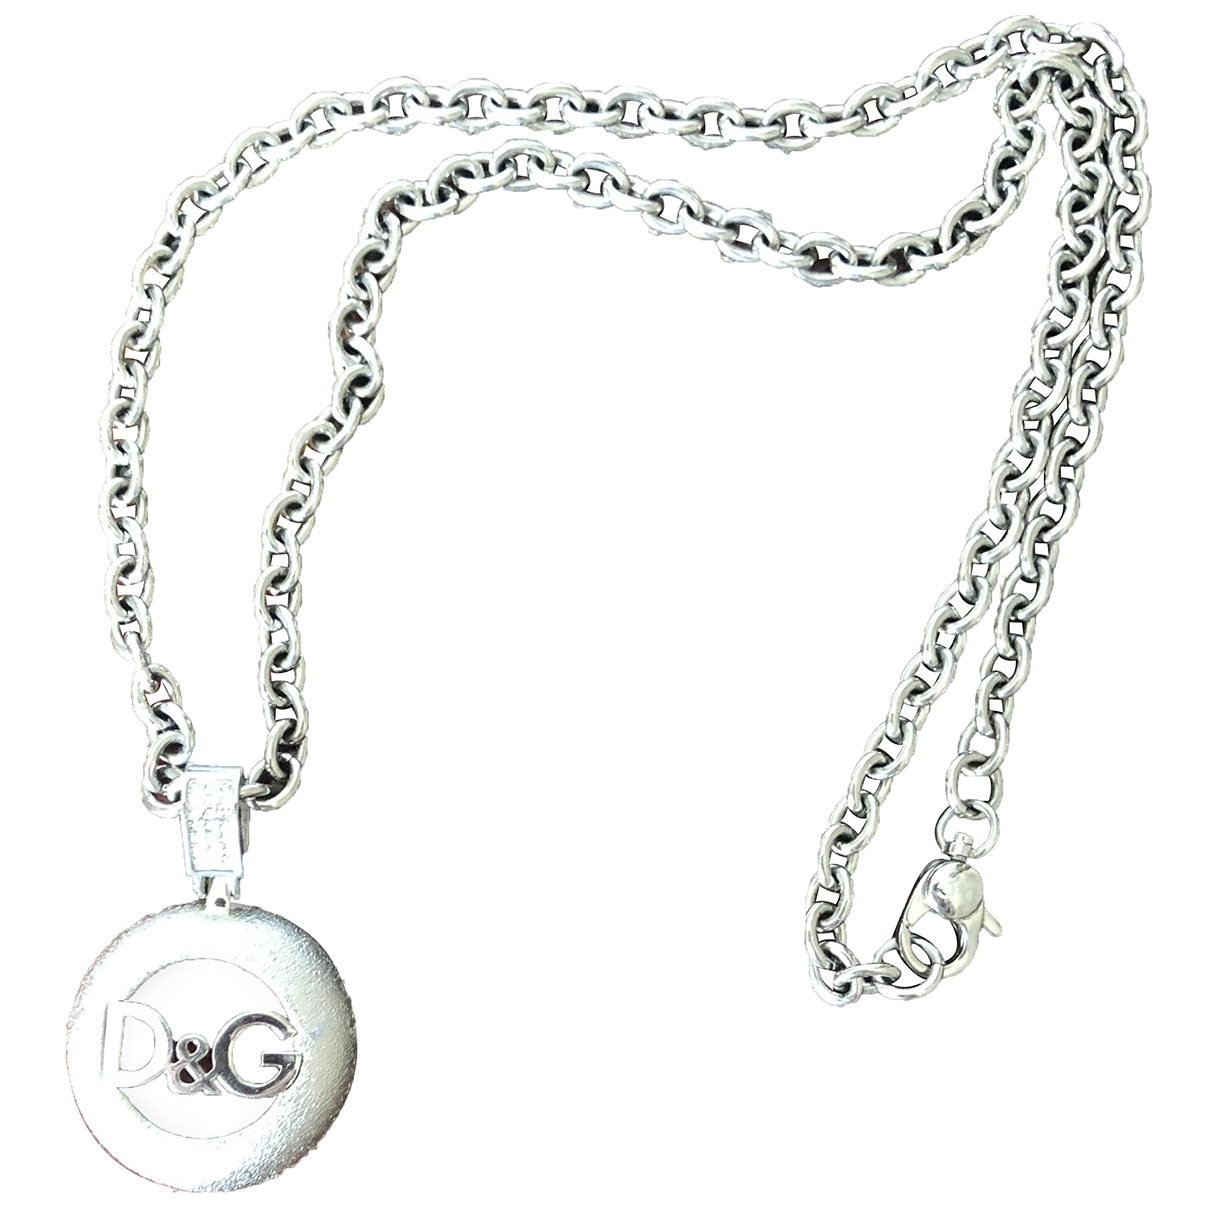 D&g \N Silver Metal necklace for Women \N